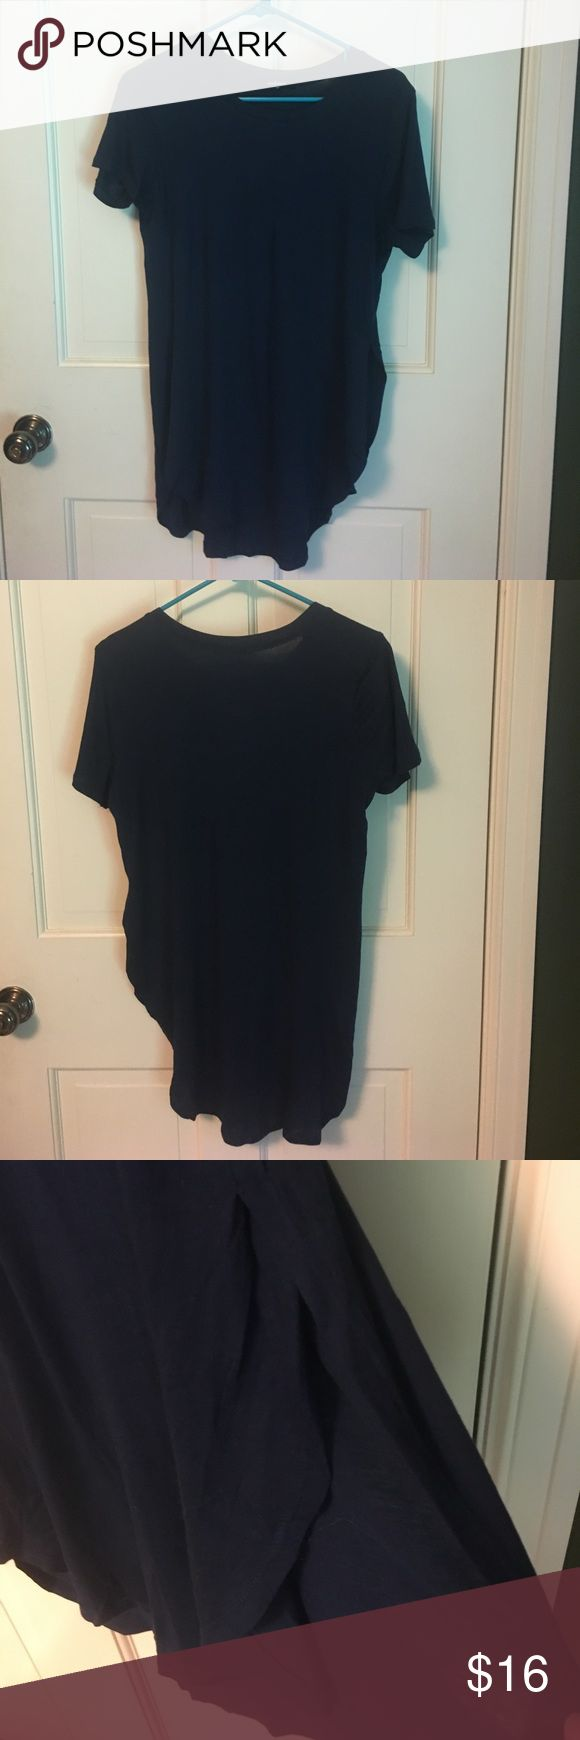 NWOT navy scallop hem side slit tshirt size L Thin material with lower back and side slit perfect with leggings or skinny jeans. Tops Tees - Short Sleeve